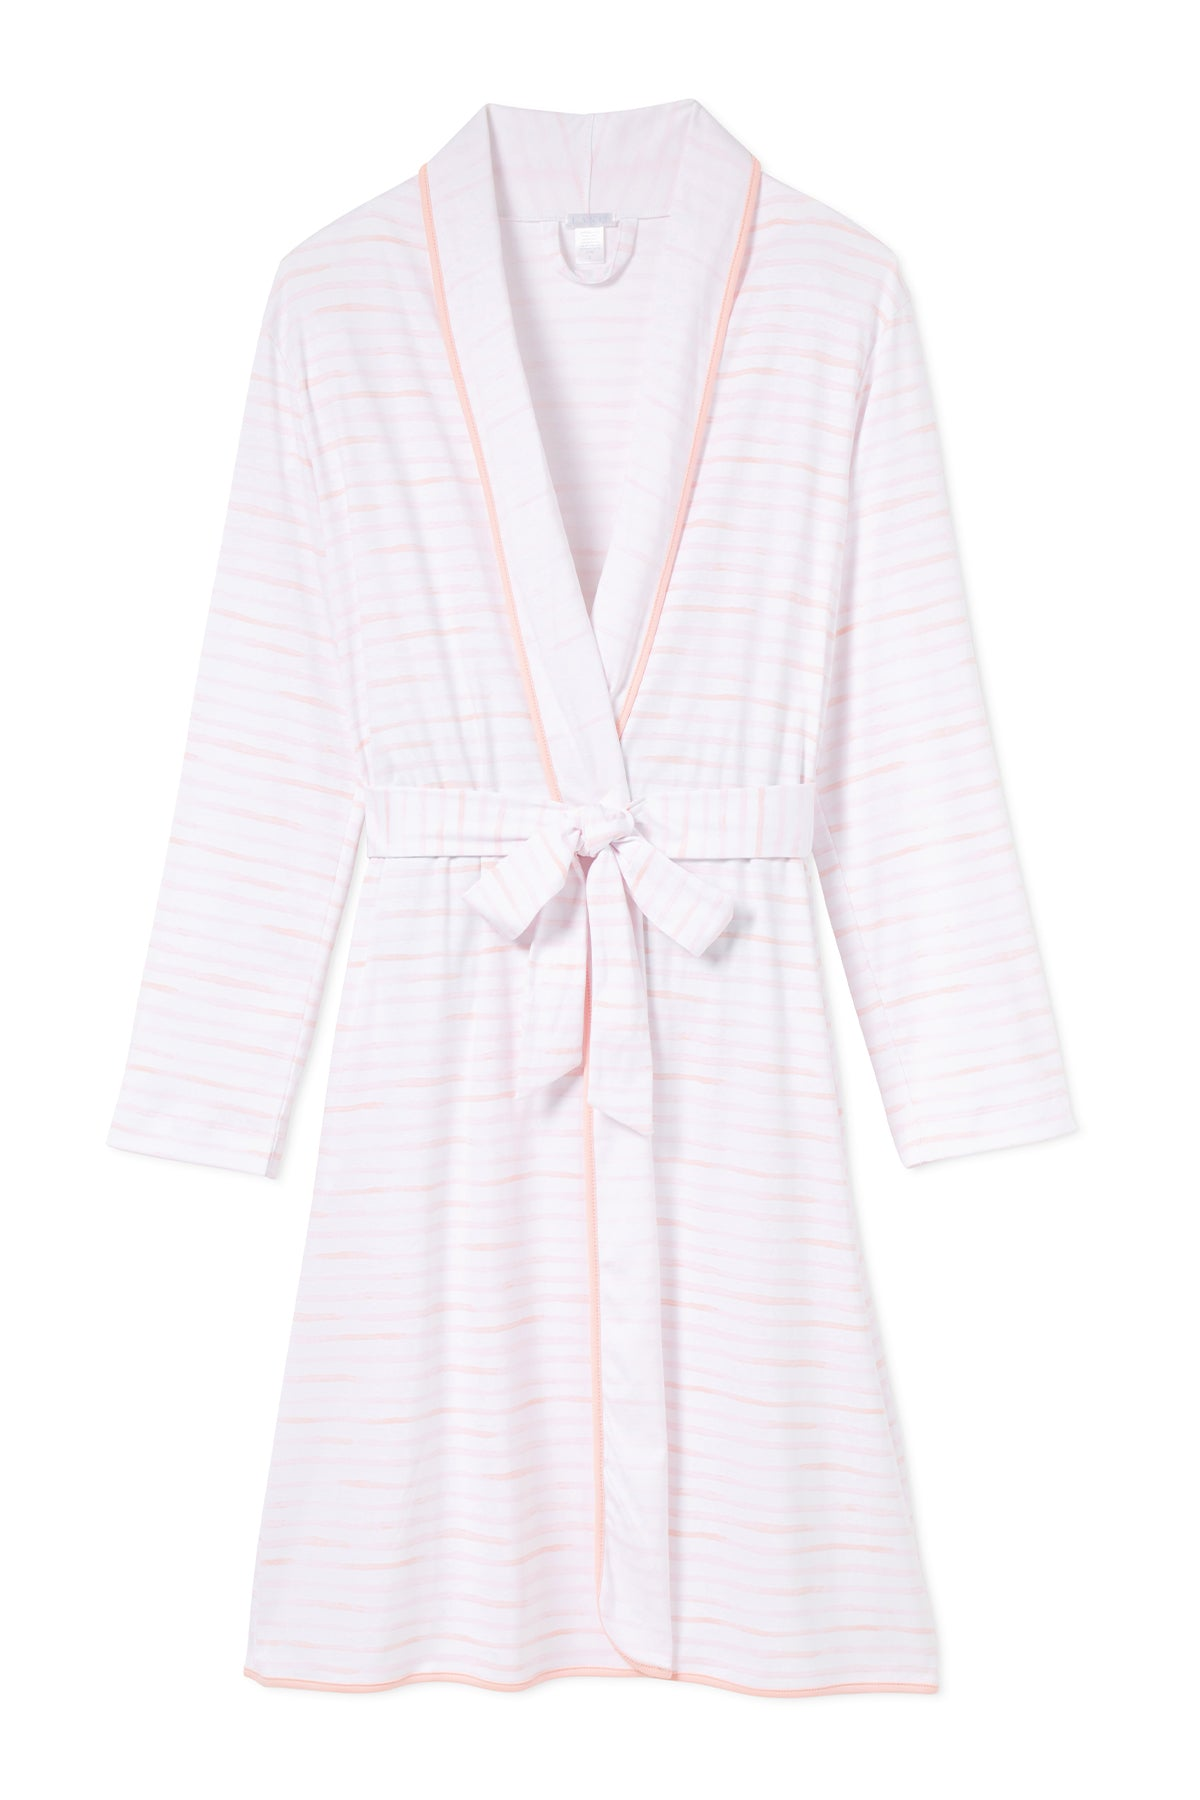 Pima Robe in Sunrise